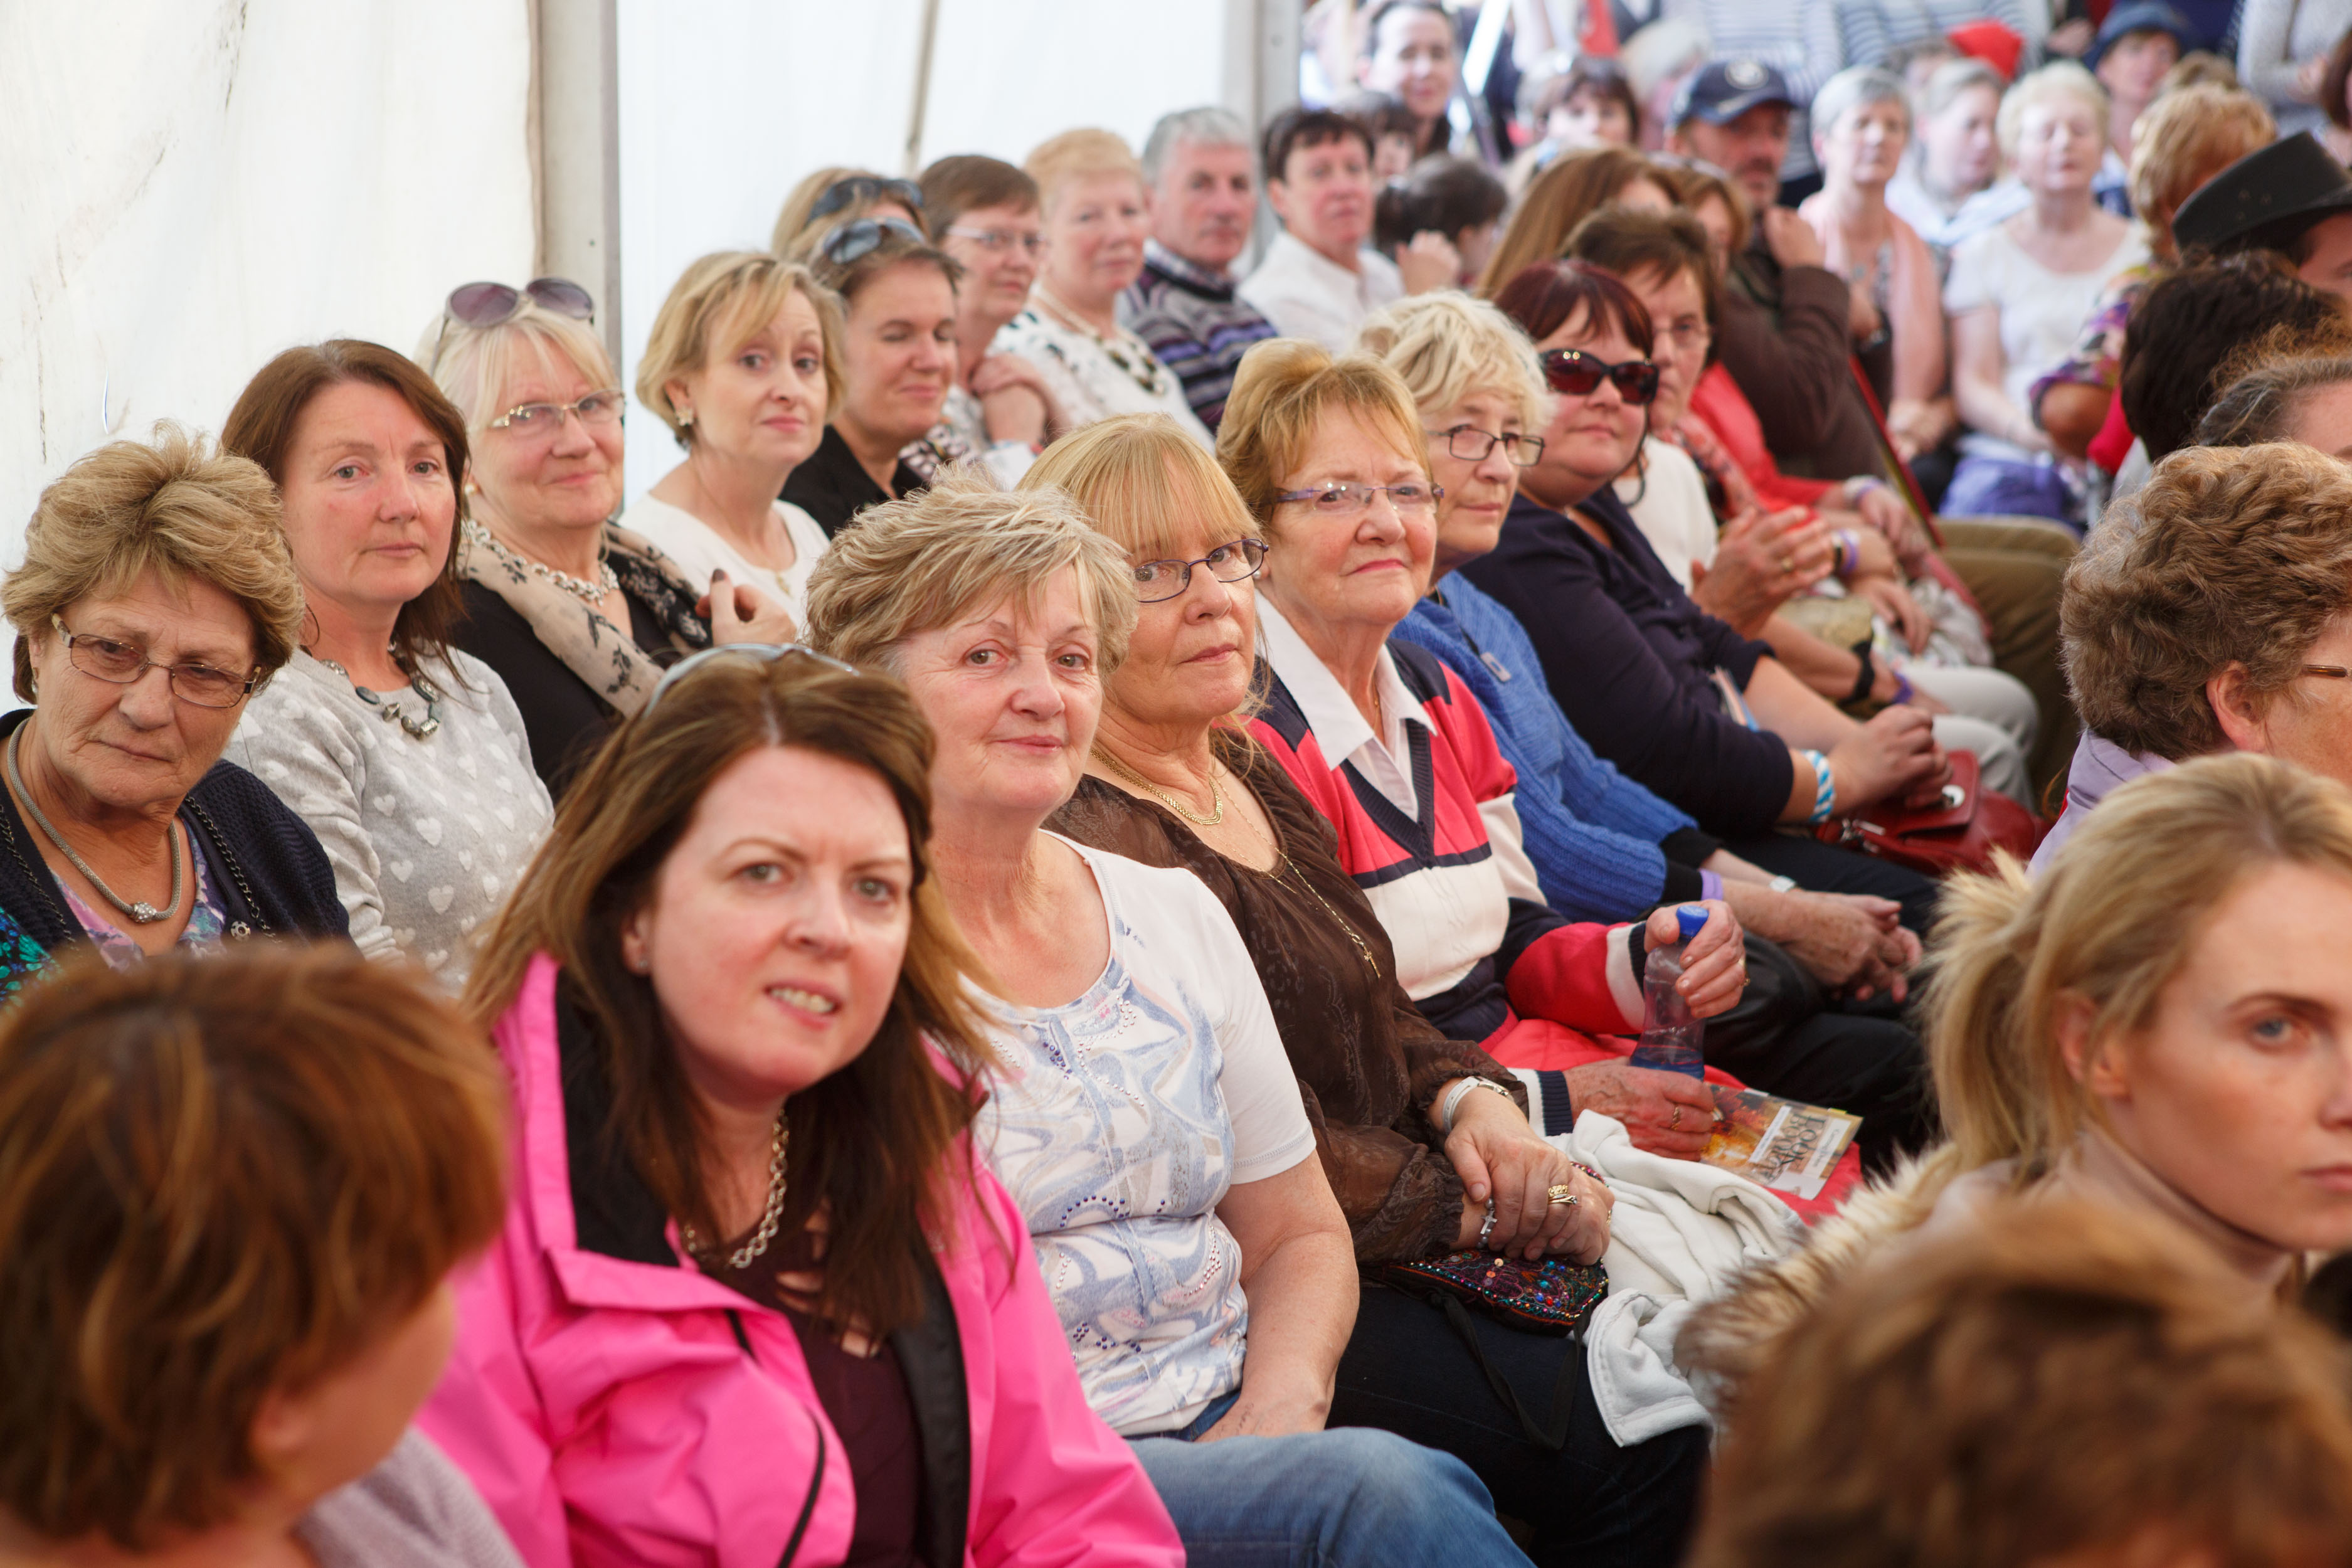 Crowds at the fashion show during the day.